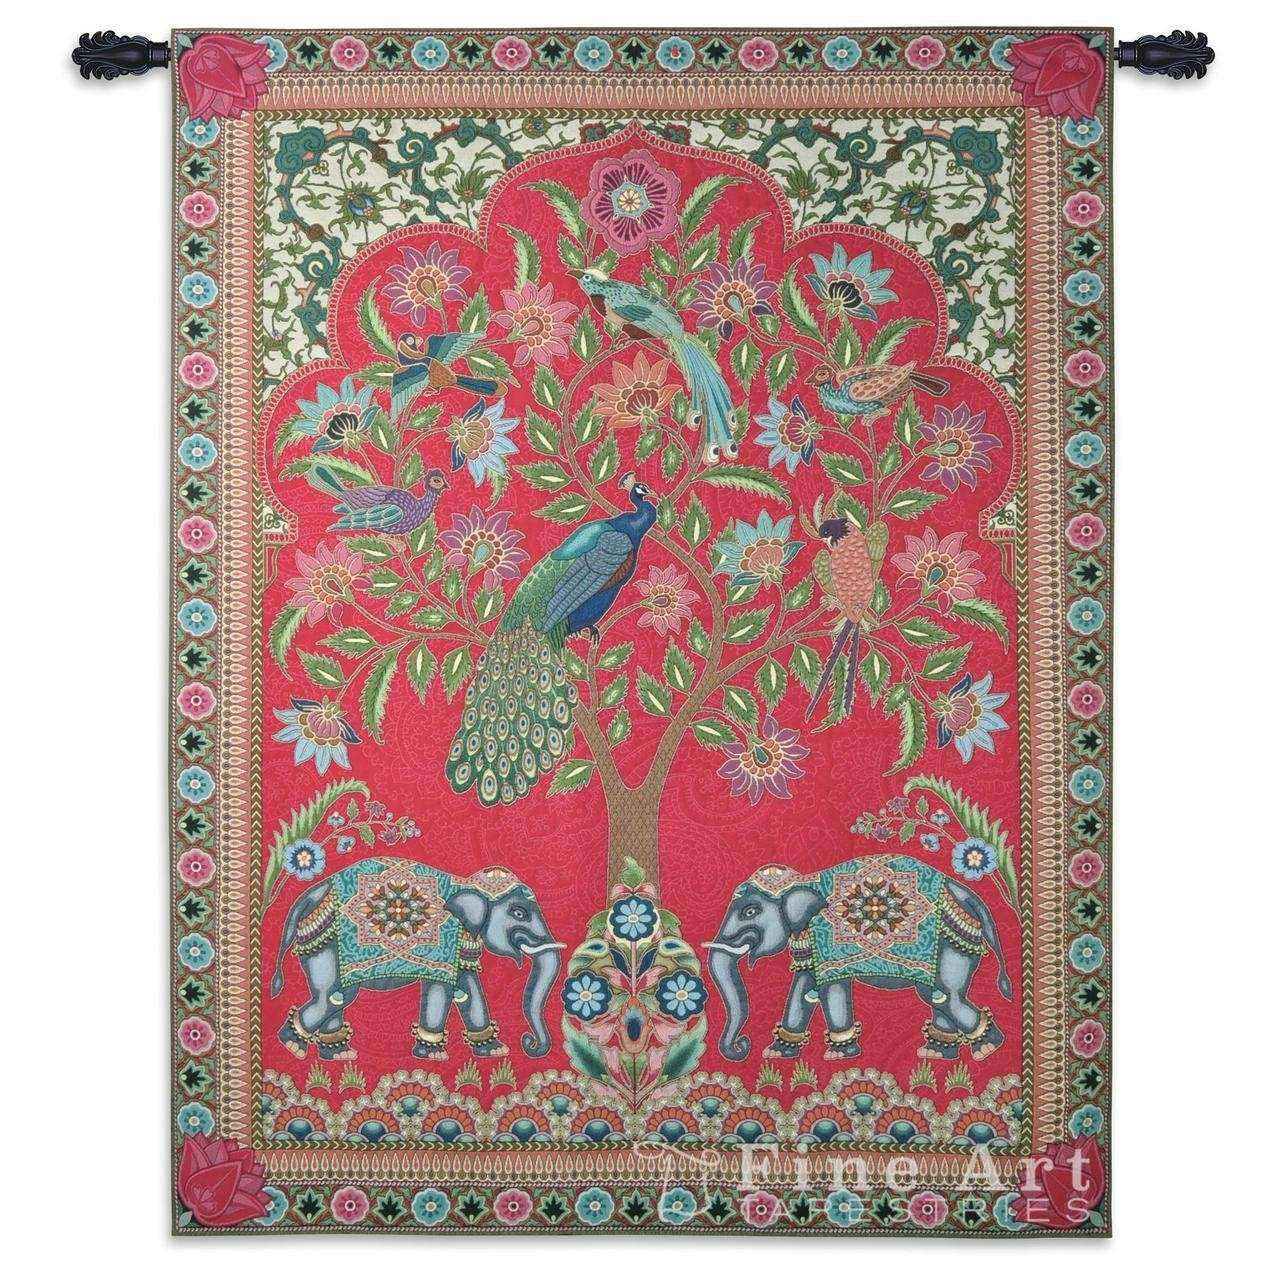 India Tapestry Wall Hanging Ethnic Ornamental Design H67